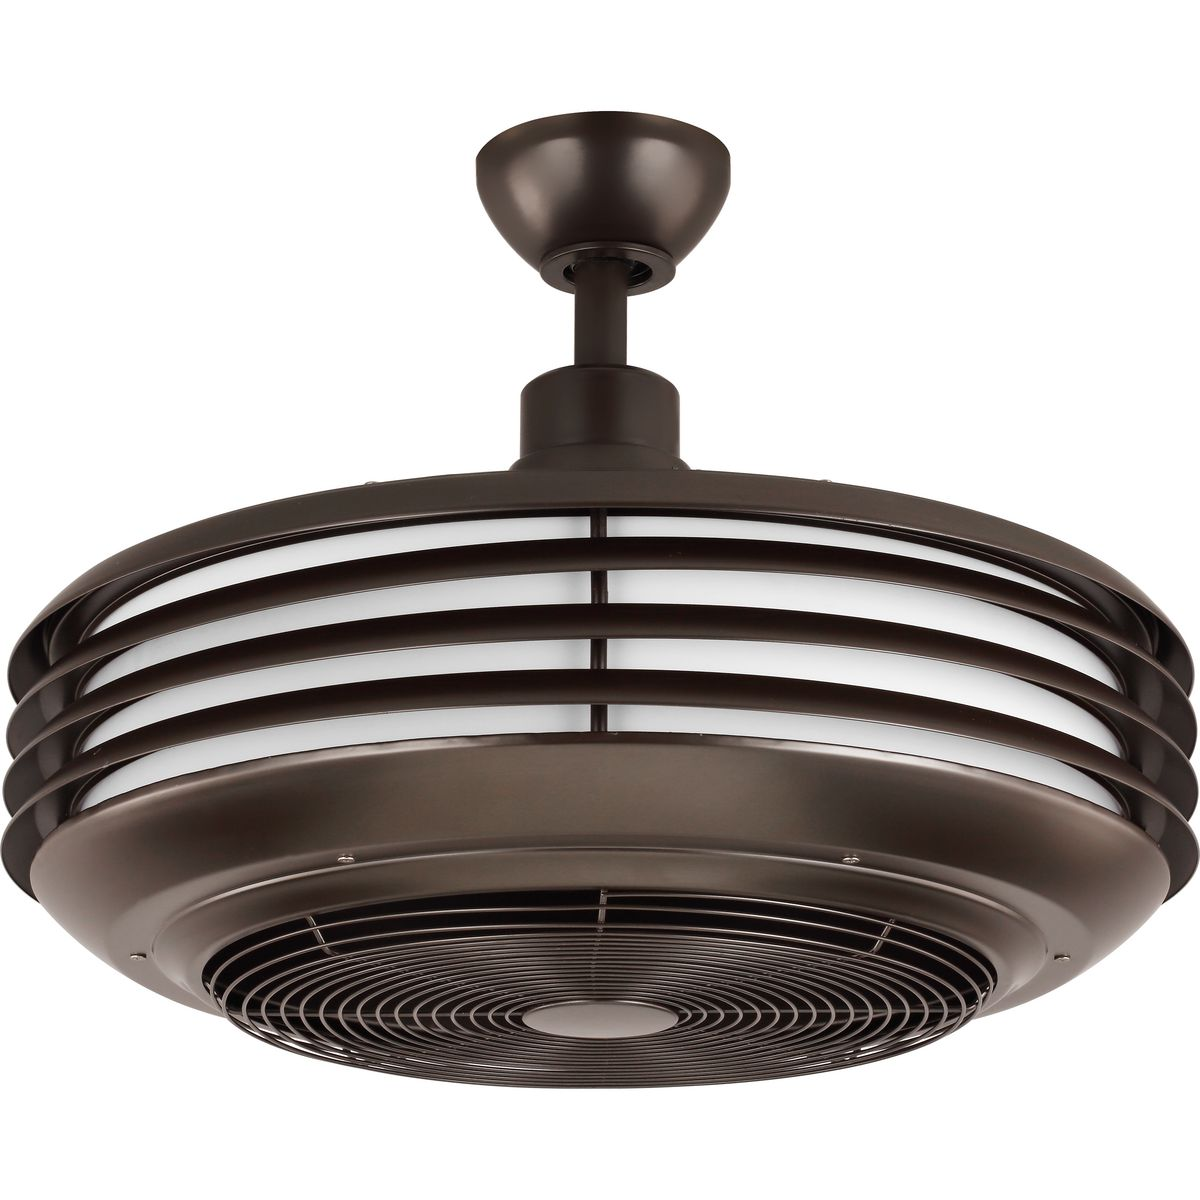 Sanford 24 Enclosed Indoor Outdoor Ceiling Fan With Led Light P2594 12930k Hubbell